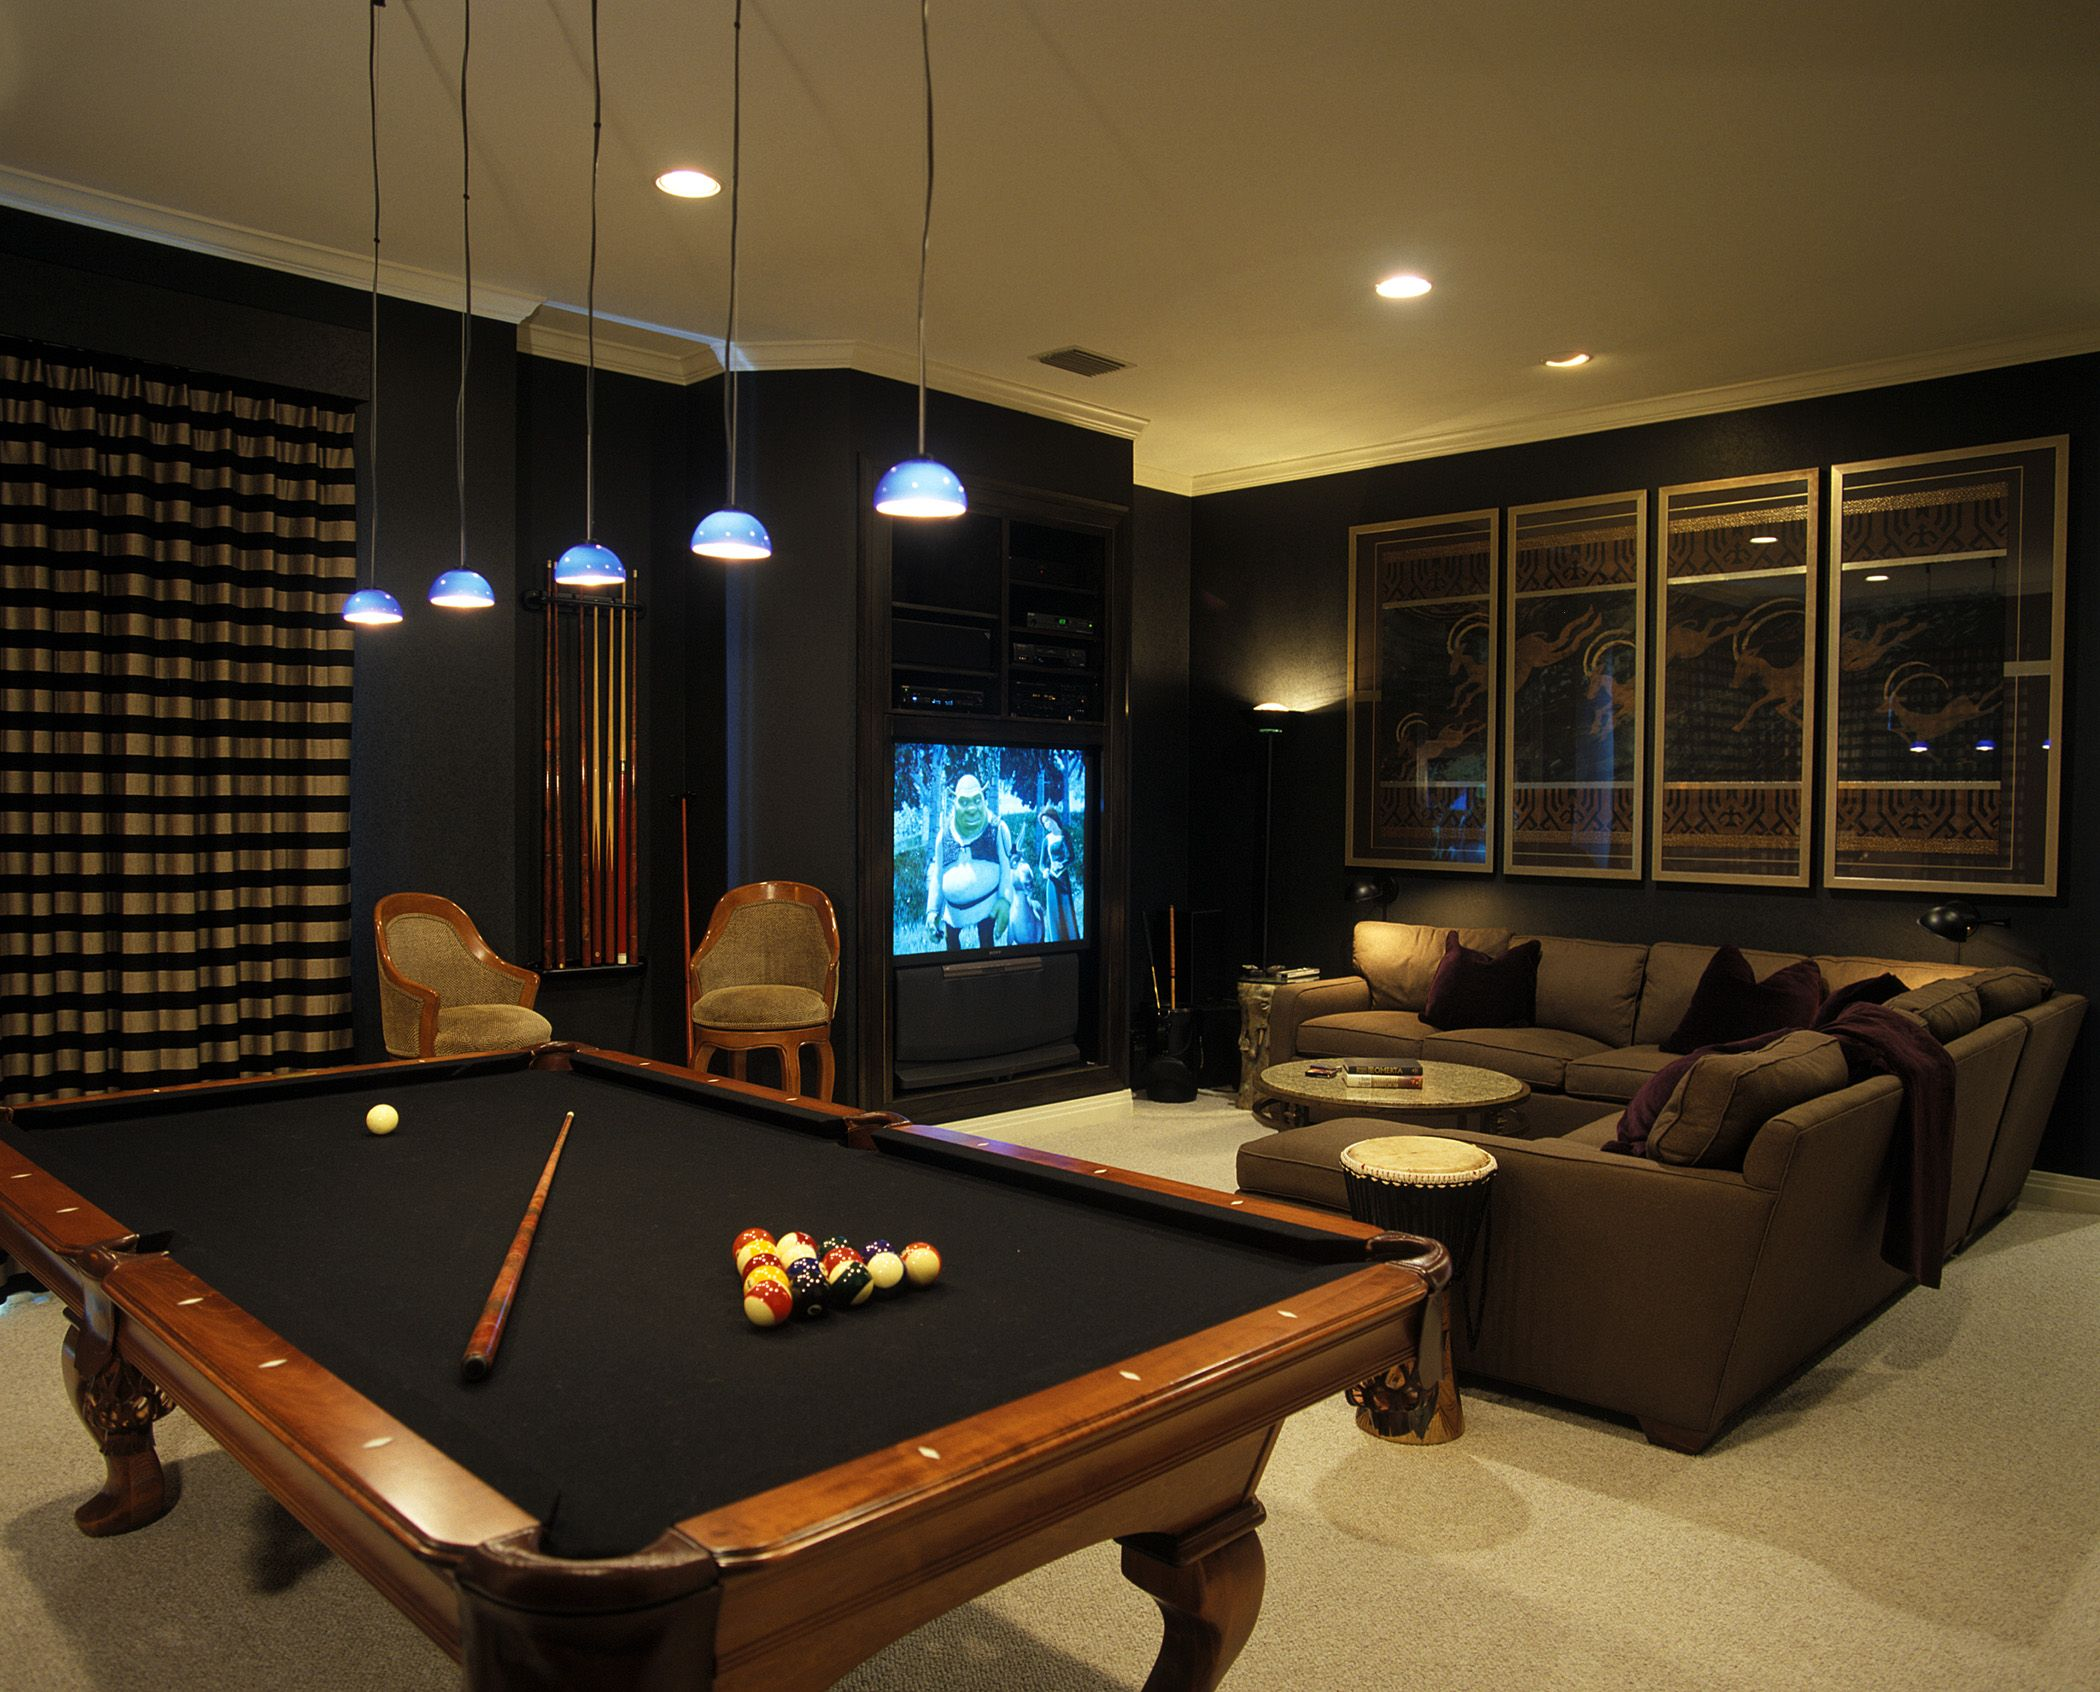 Basement entertainment room - 17 Best Ideas About Media Rooms On Pinterest Narrow Basement Ideas Narrow Family Room And Cool Football Games